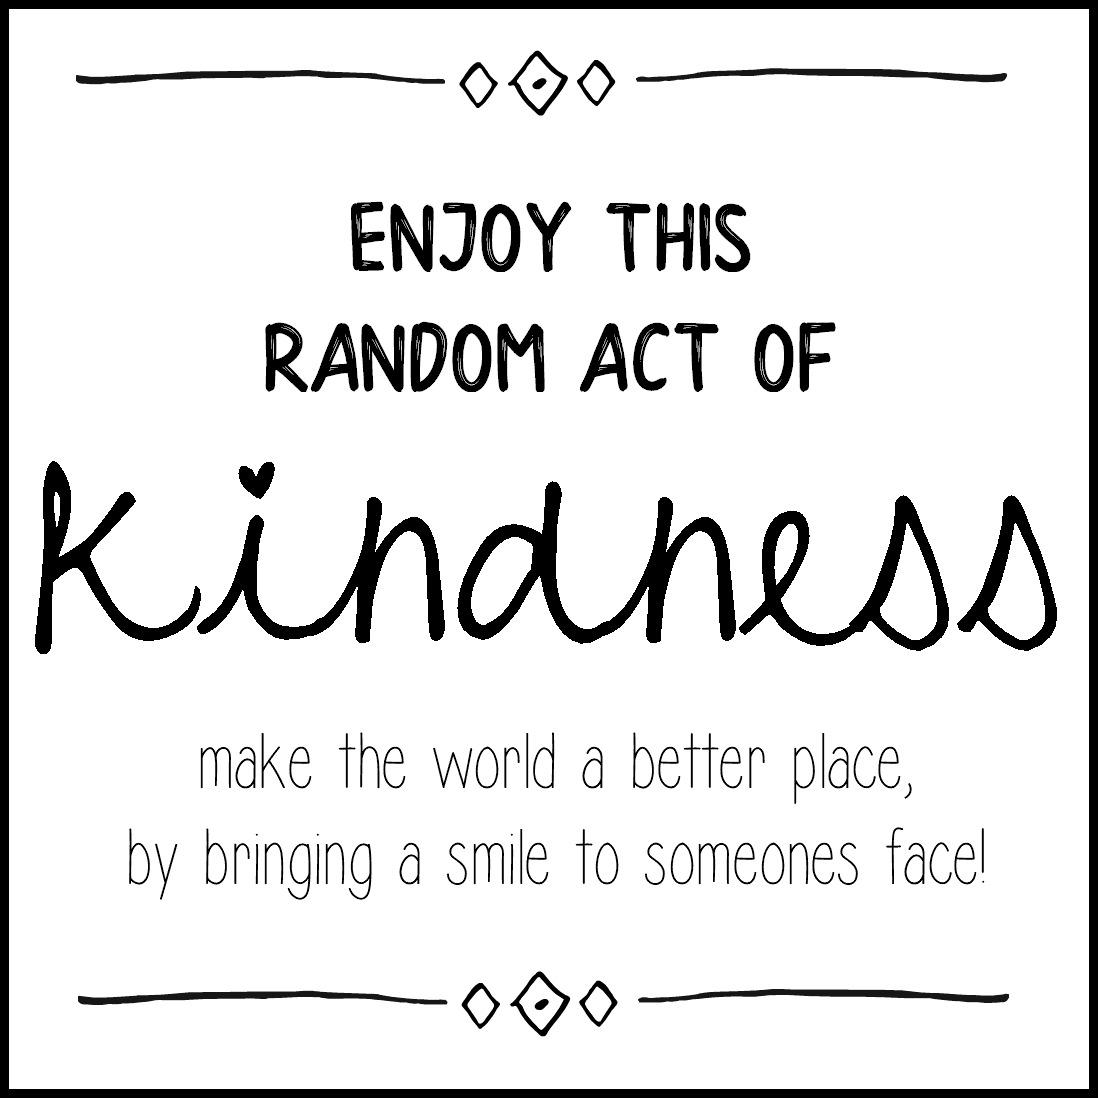 image regarding Random Act of Kindness Printable titled 25 Times of Random Functions of Kindness + Free of charge Printables! - The